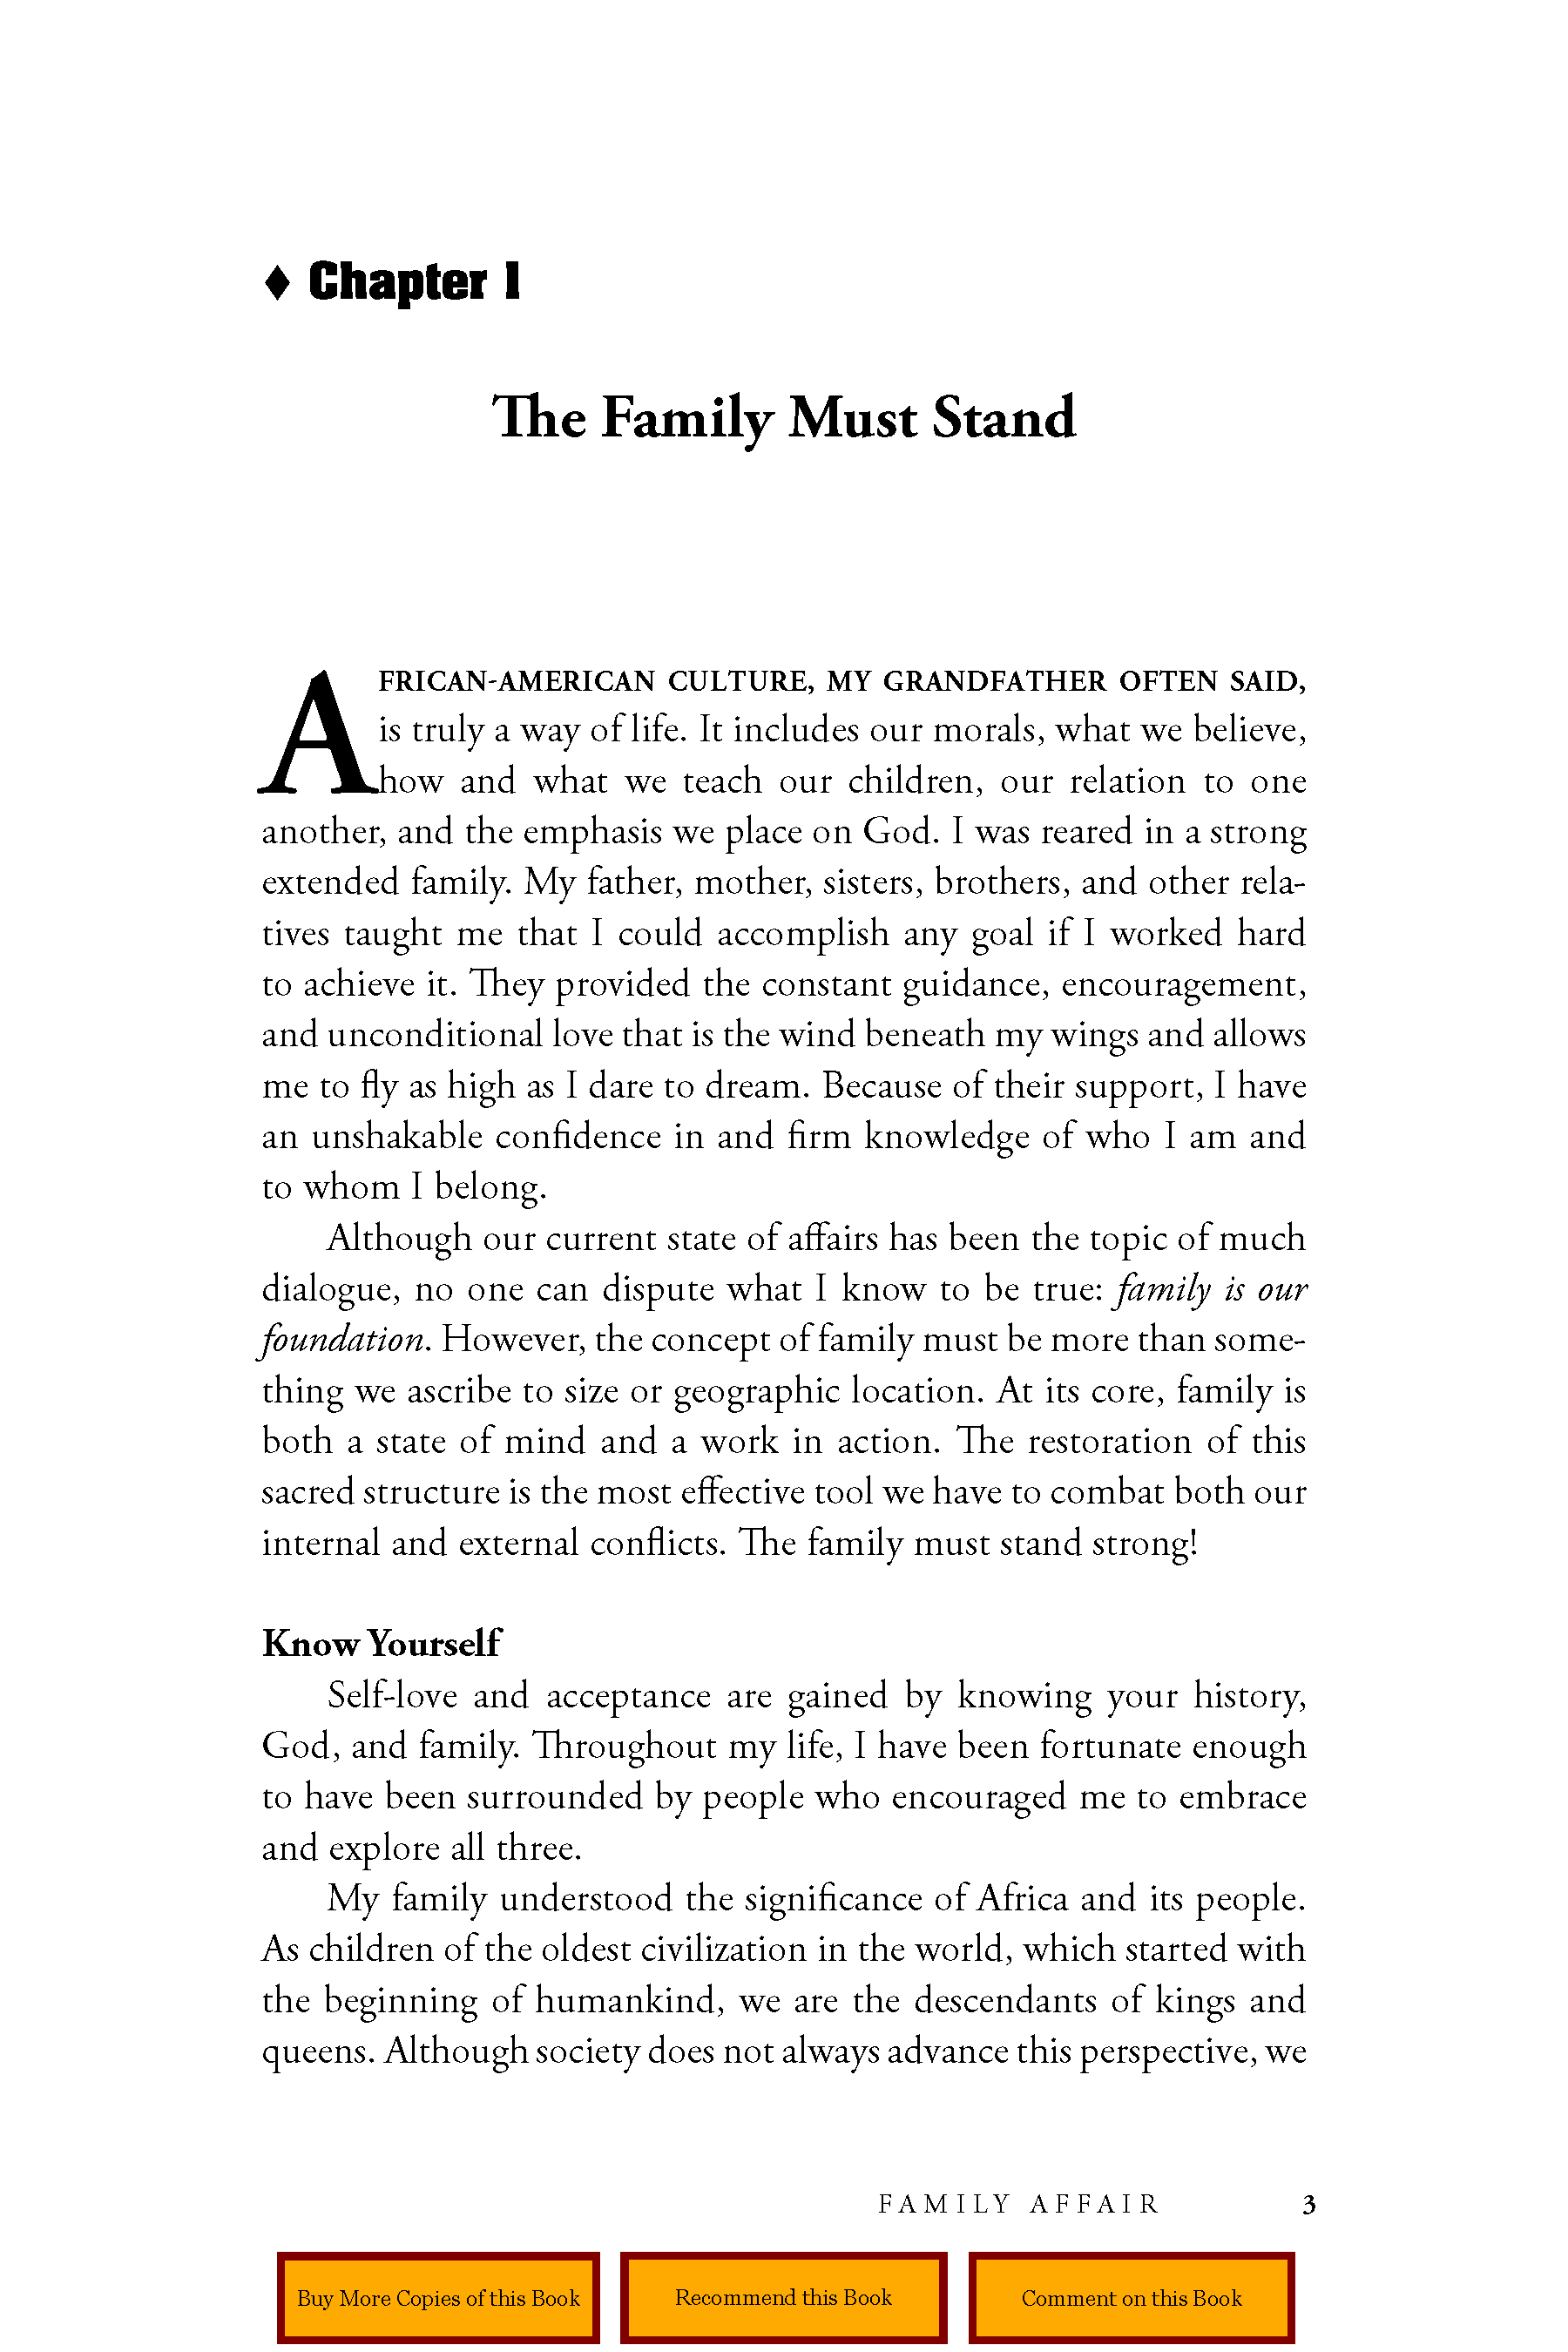 Family Affair_Page_06.png